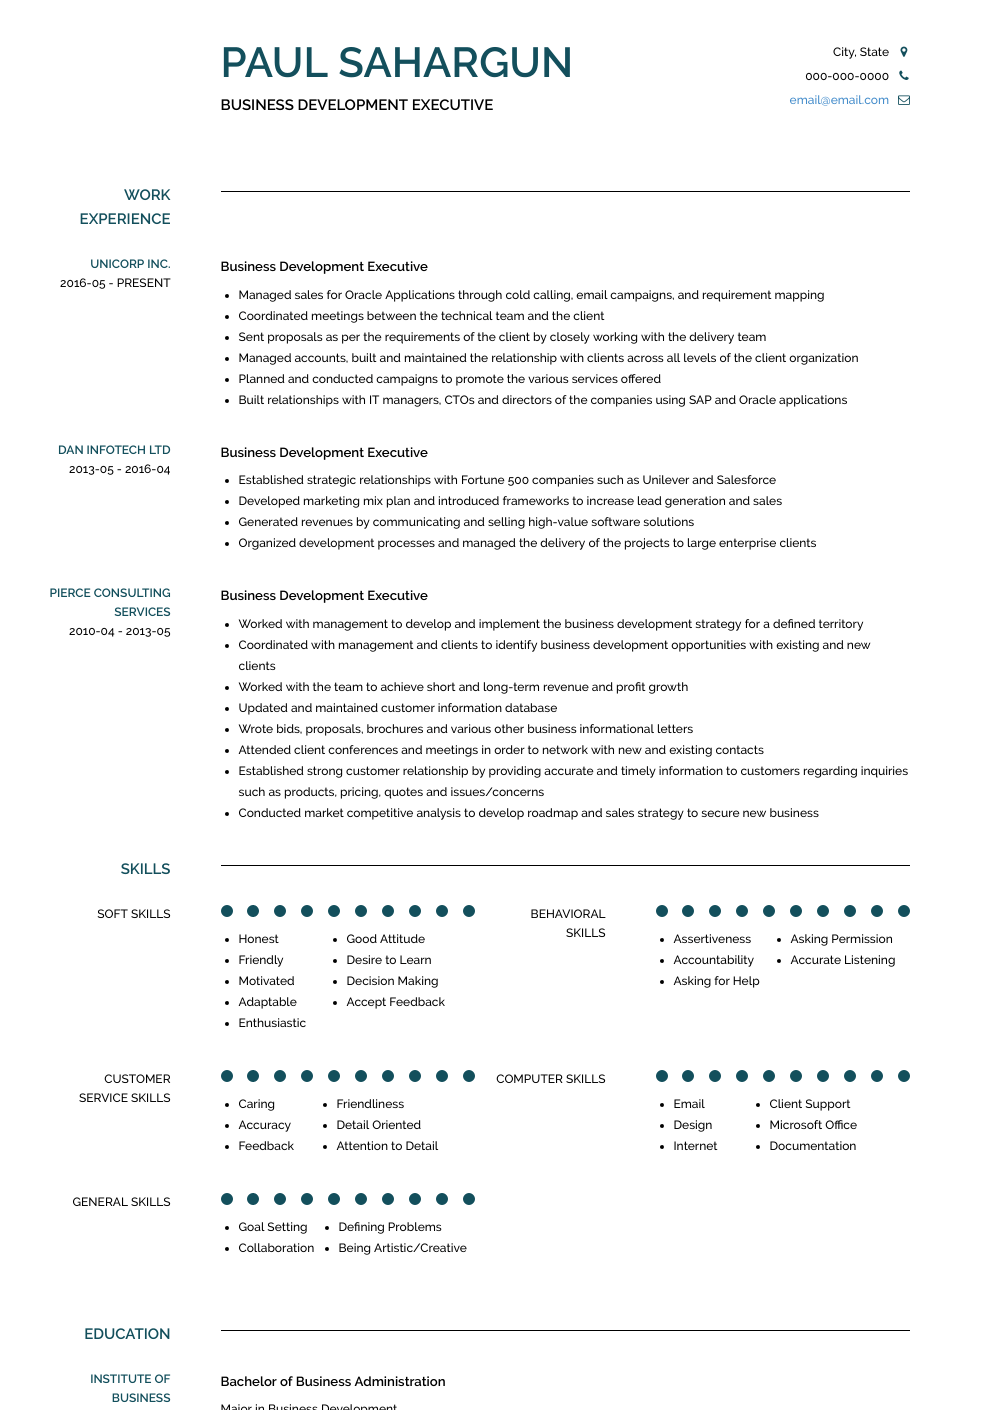 Business Development Resume Samples & Templates VisualCV